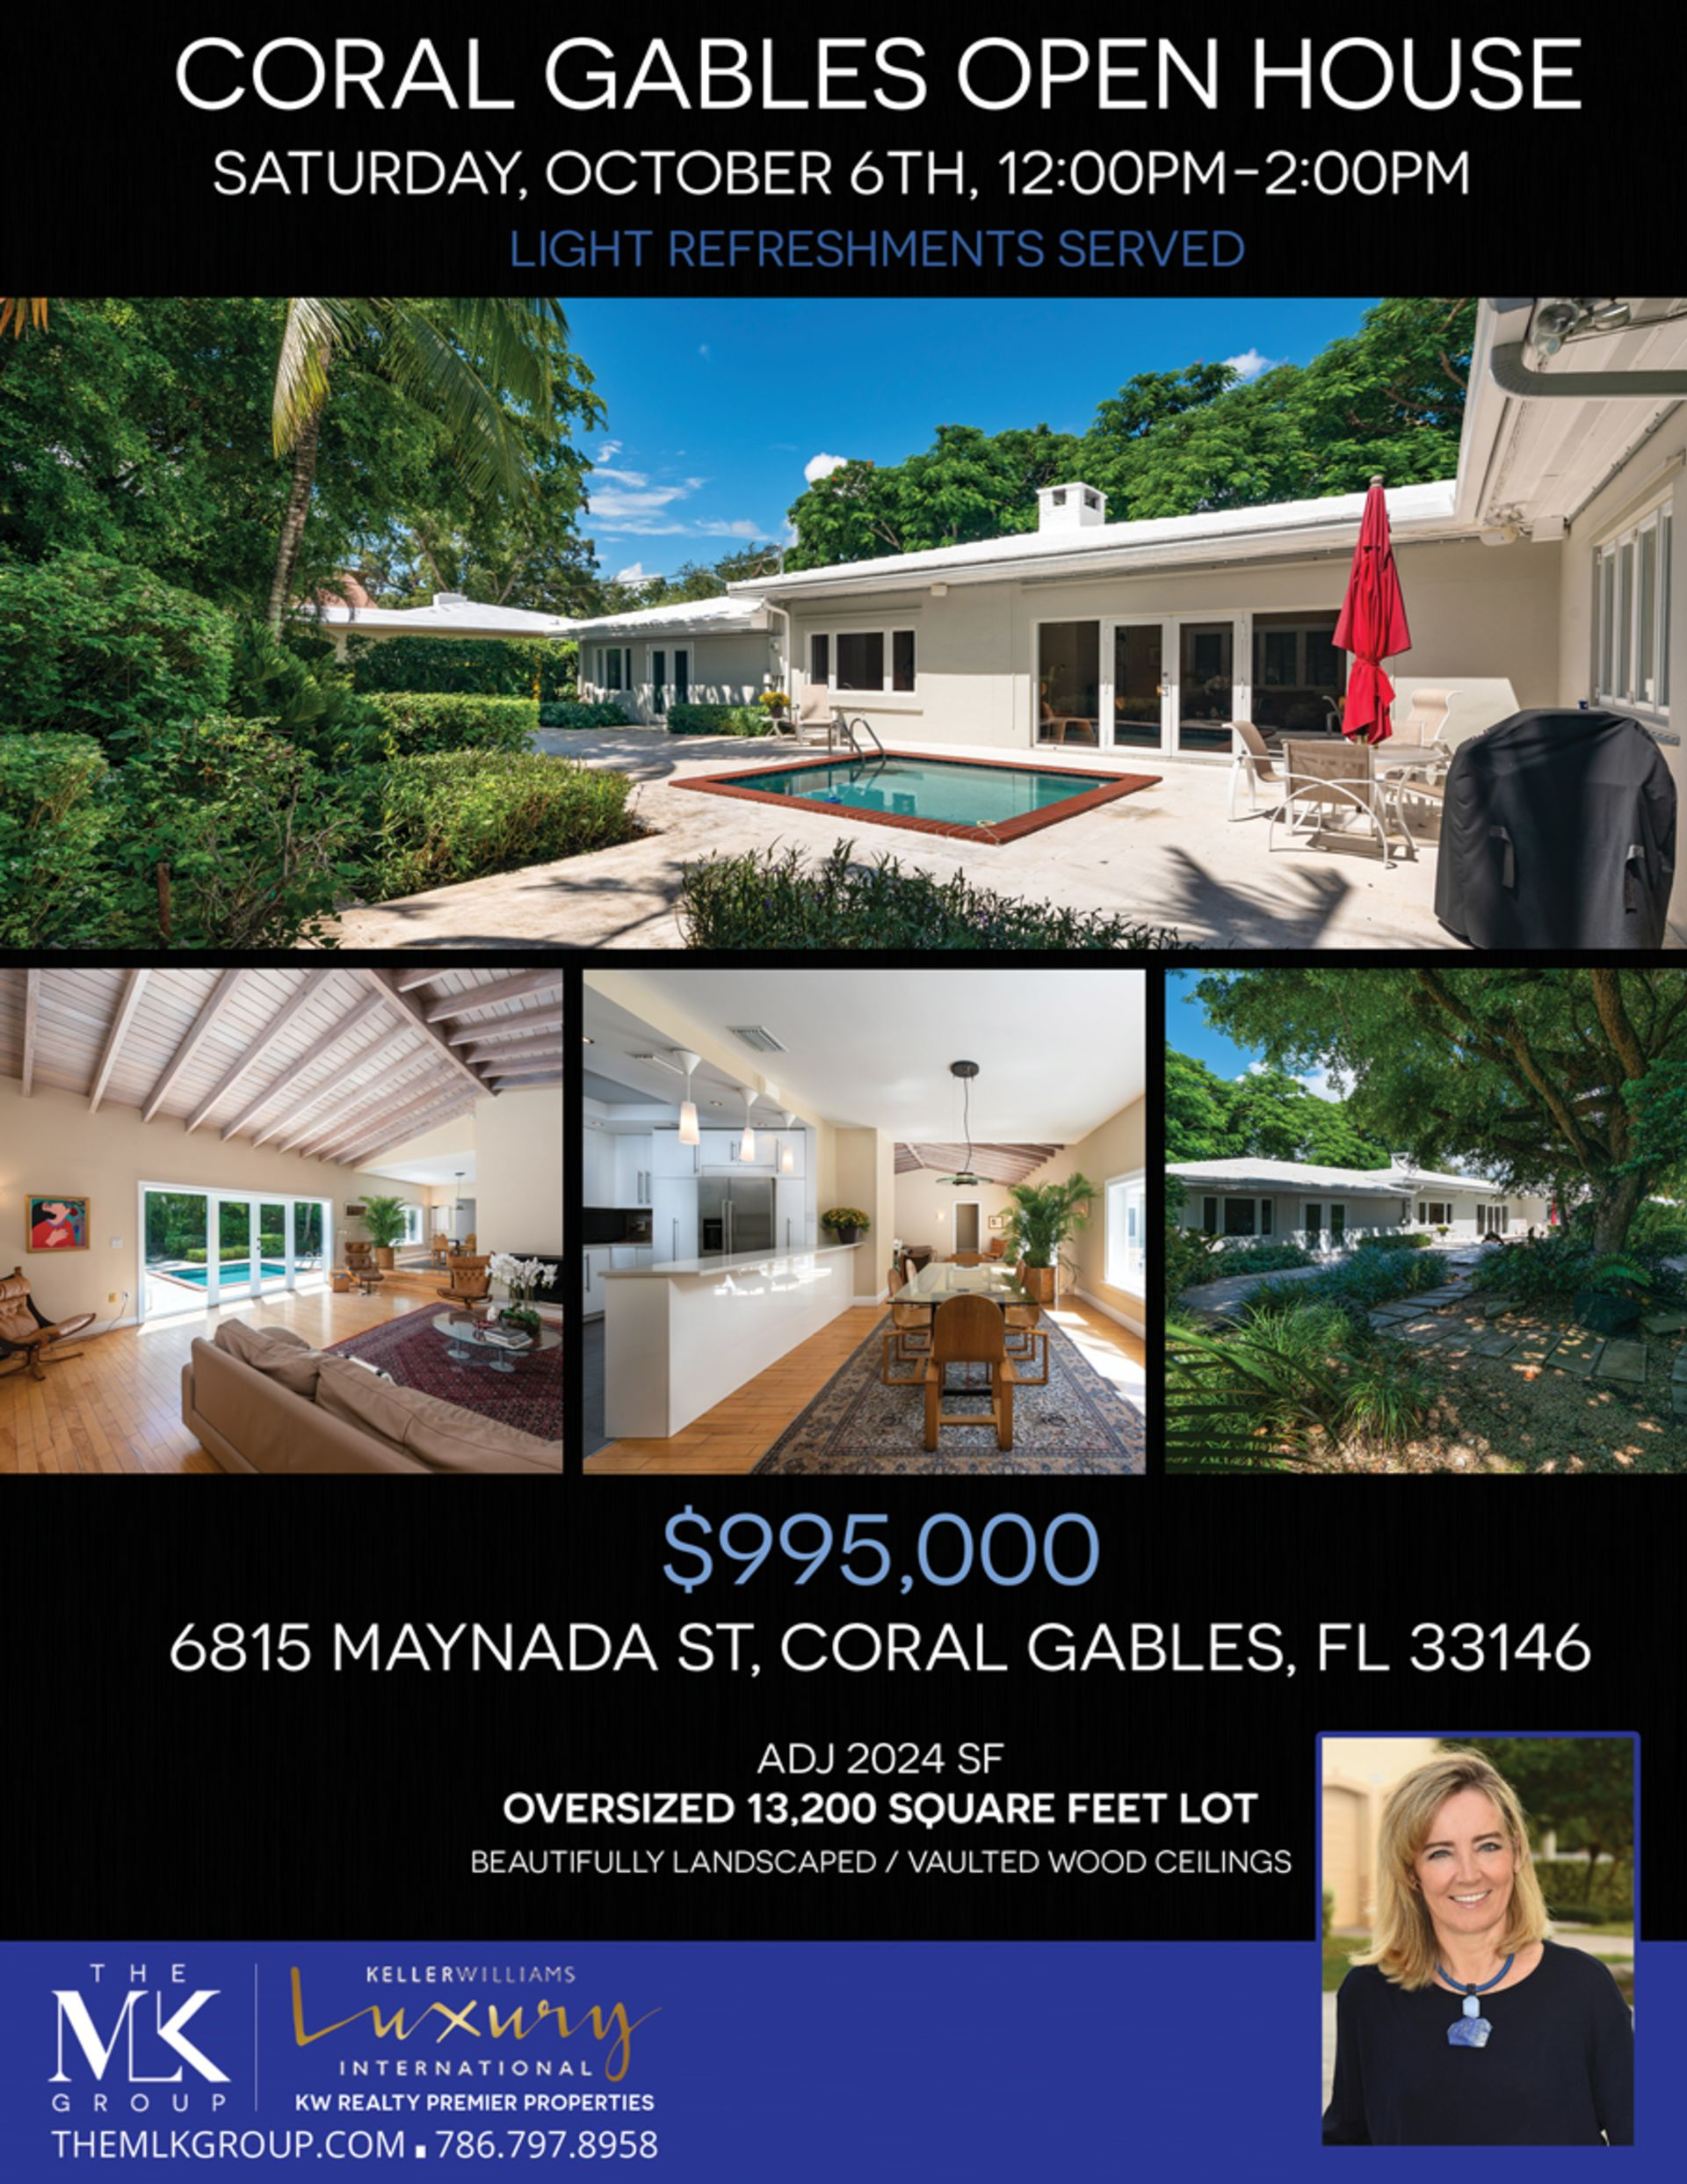 Open house in Coral Gables this coming Saturday October 6th from 12-2pm